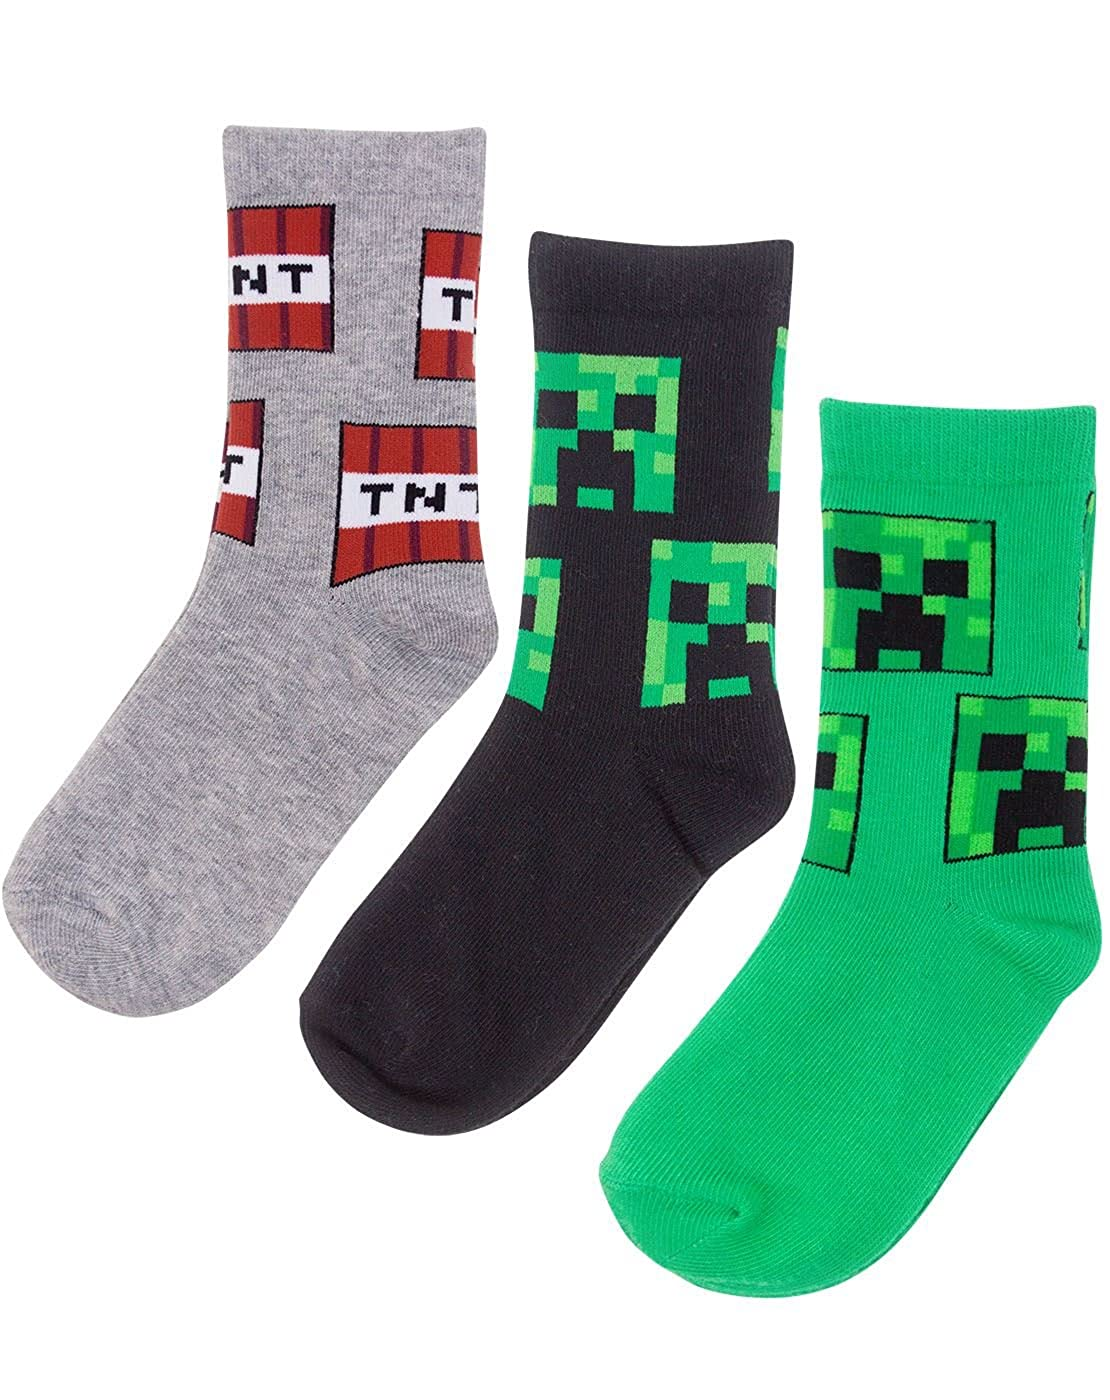 Minecraft Creeper Assorted 3 Pack Boy's Socks TV Mania